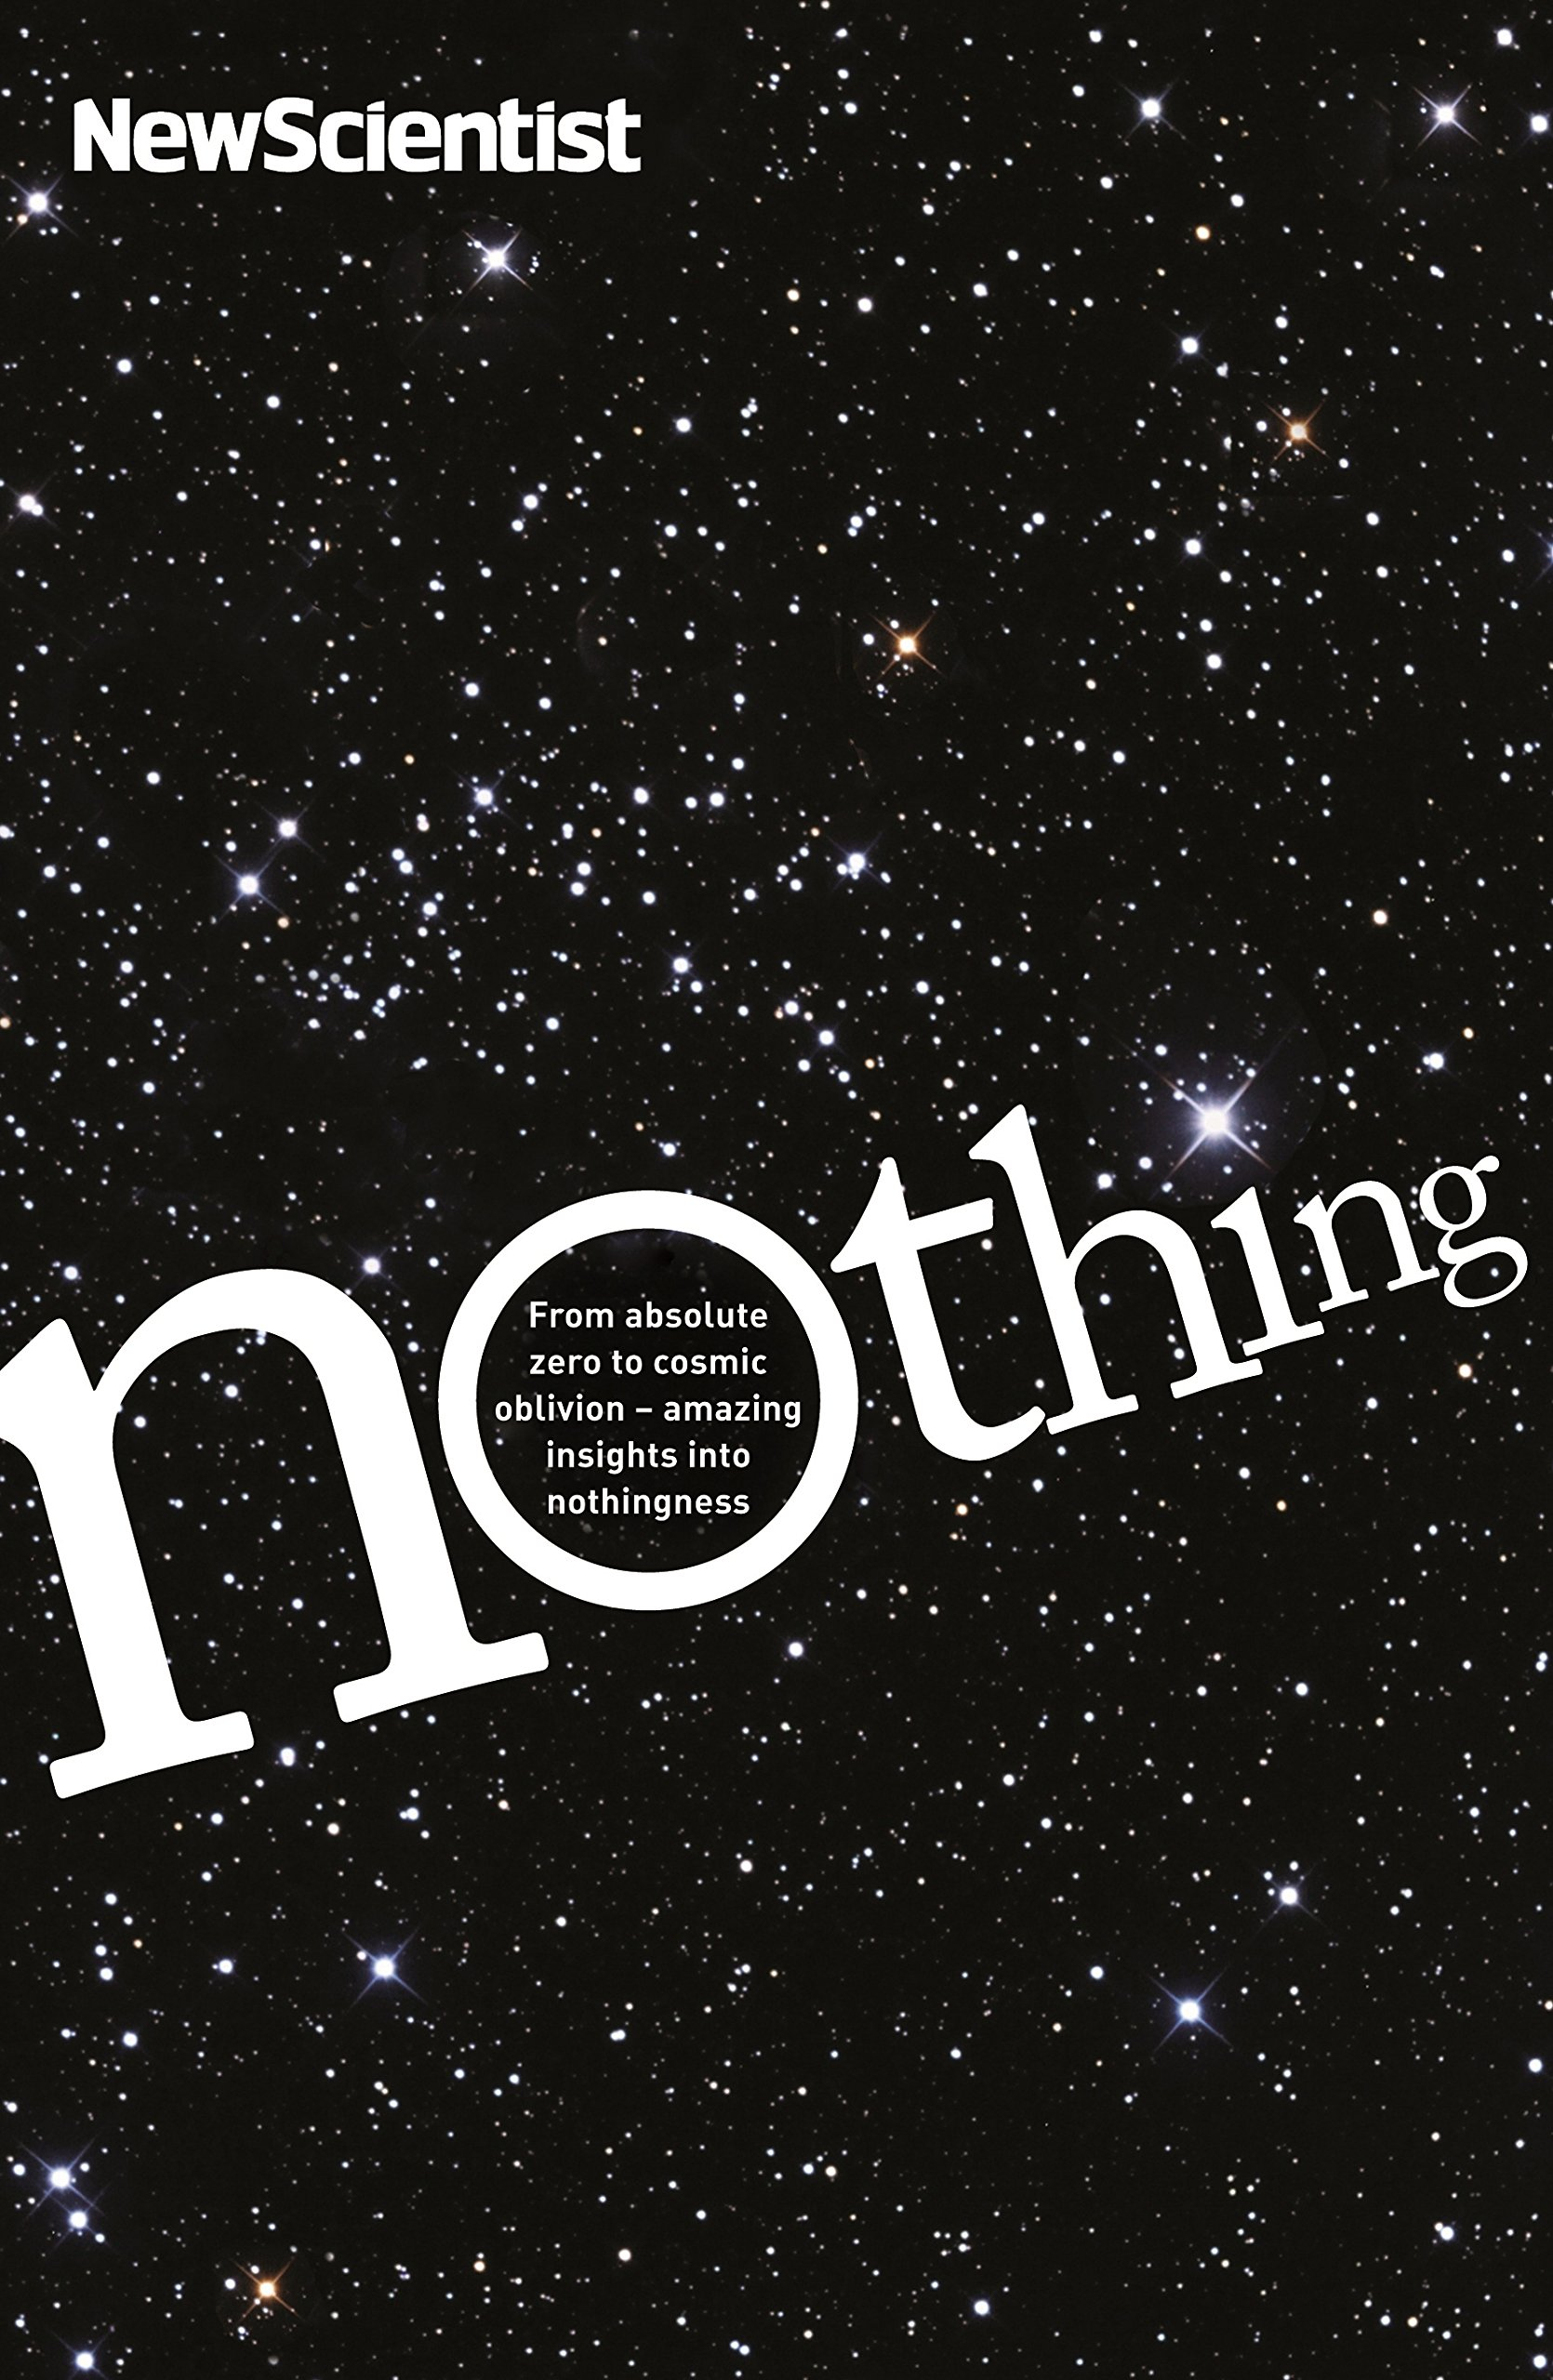 Nothing: From Absolute Zero to Cosmic Oblivion Amazing Insights into Nothingness (New Scientist)